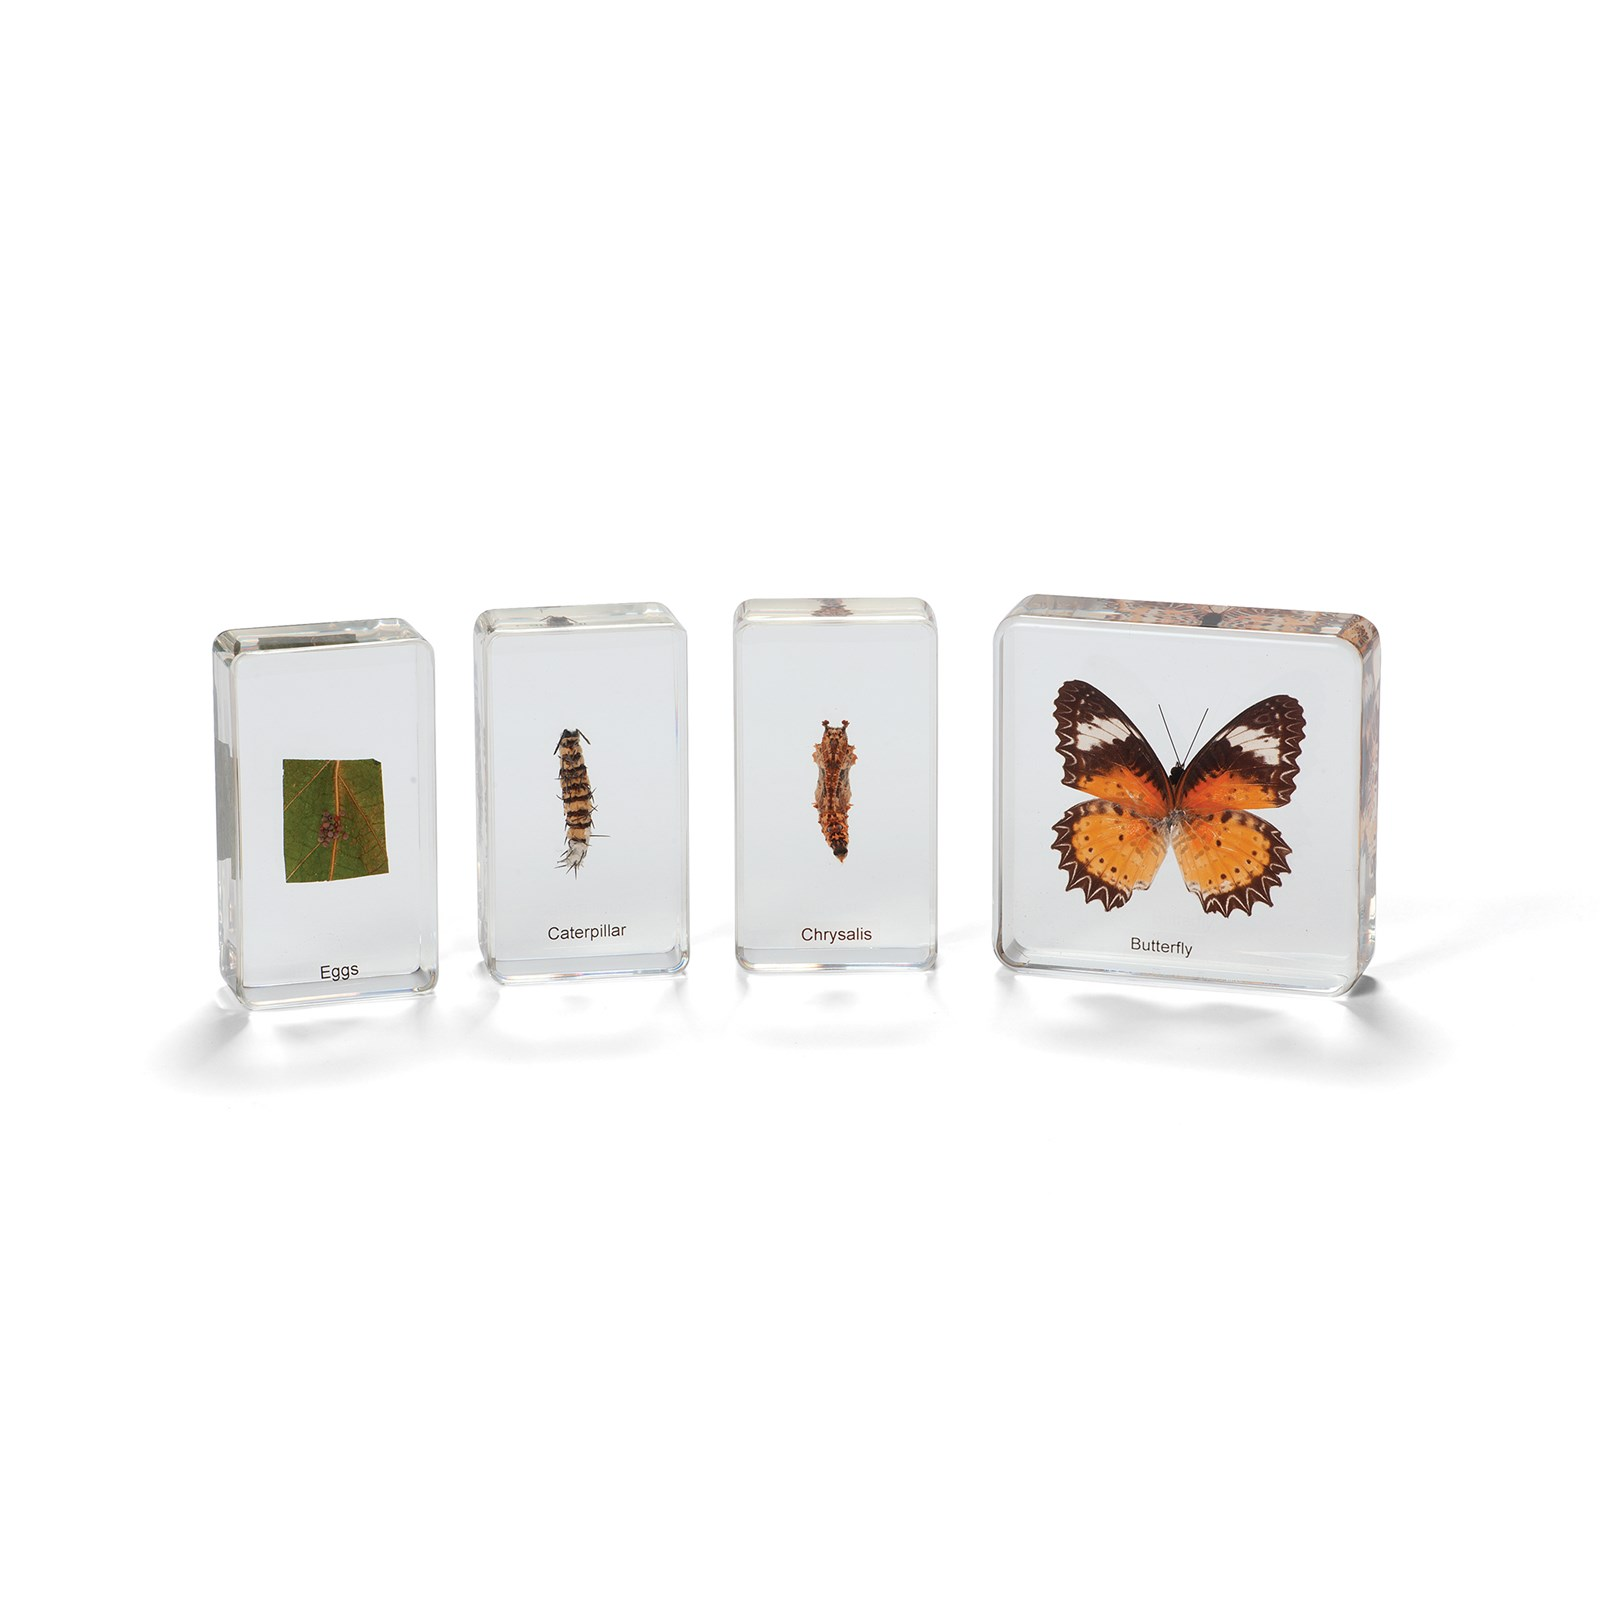 Mini Beasts Butterfly Life Cycle